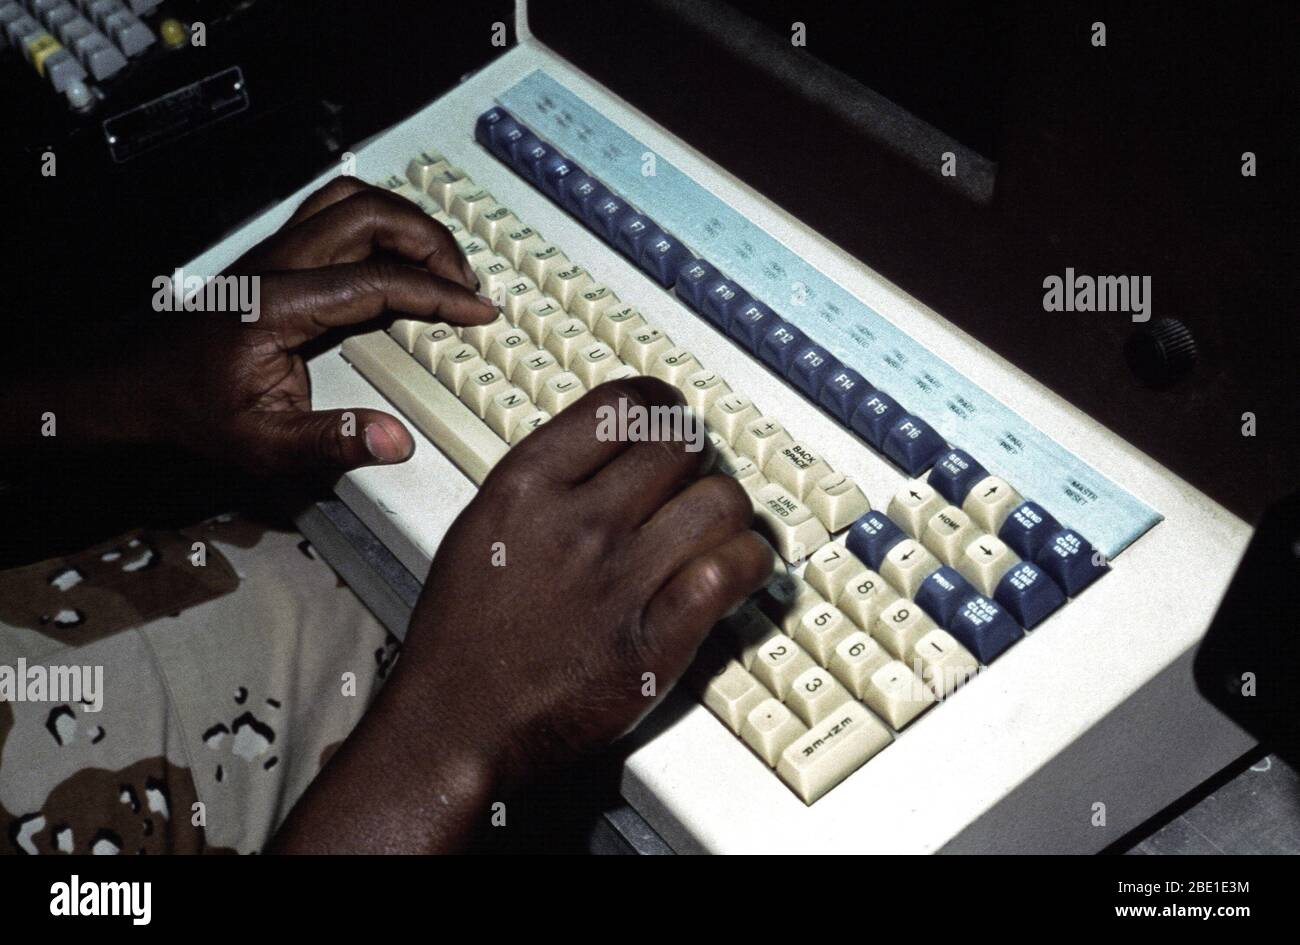 A radioman of the Joint Communications Support Element checks a computer terminal for the day's incoming messages.  He is participating in Exercise SHADOW HAWK '87, a joint Jordan/US Exercise within Exercise BRIGHT STAR '87.  SHADOW HAWK is a combined effort of the US Central Command and the Joint Chiefs of Staff. Stock Photo